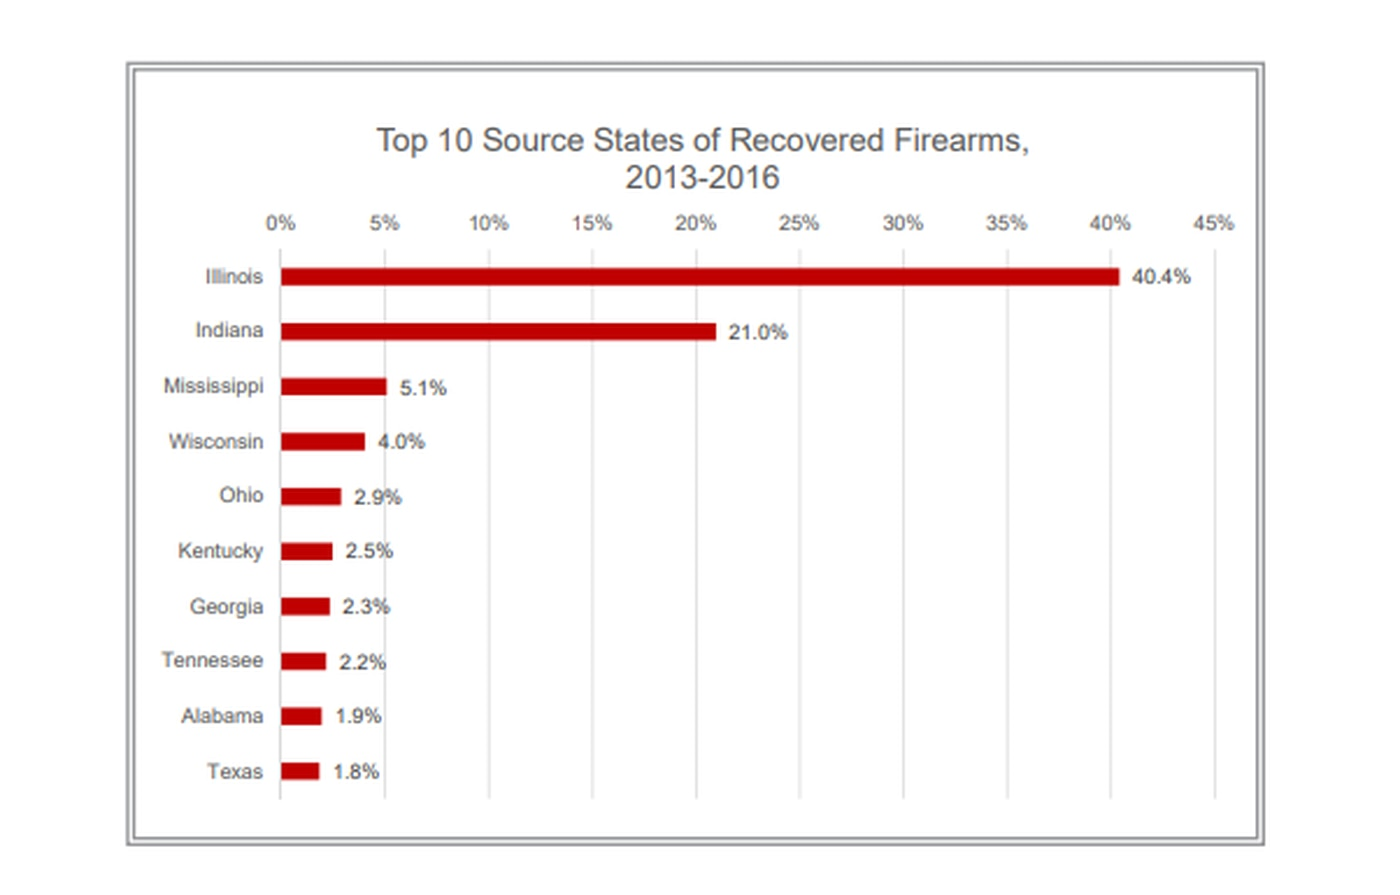 Report: 5% of illegal guns recovered in Chicago were from Mississippi